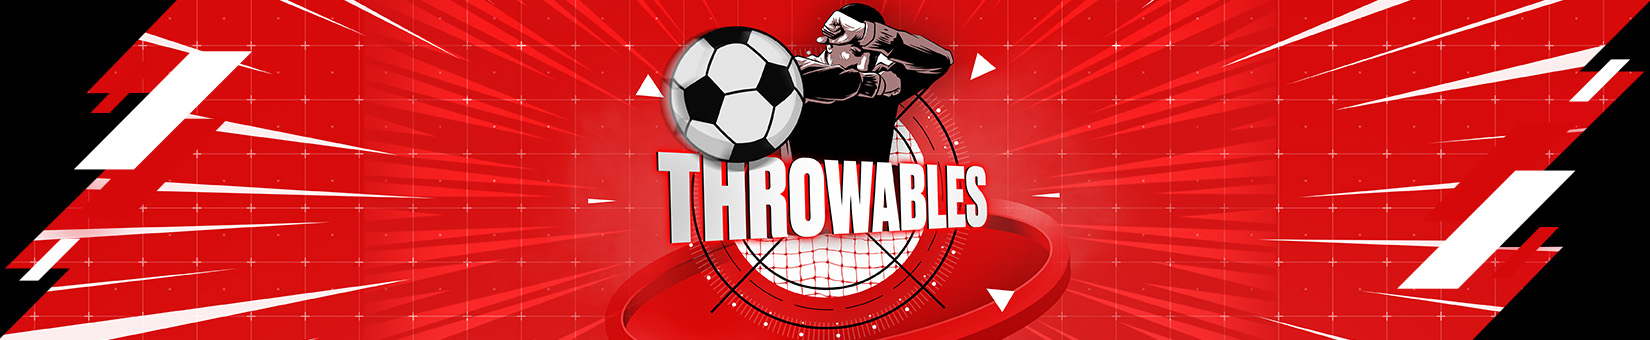 throwable_football